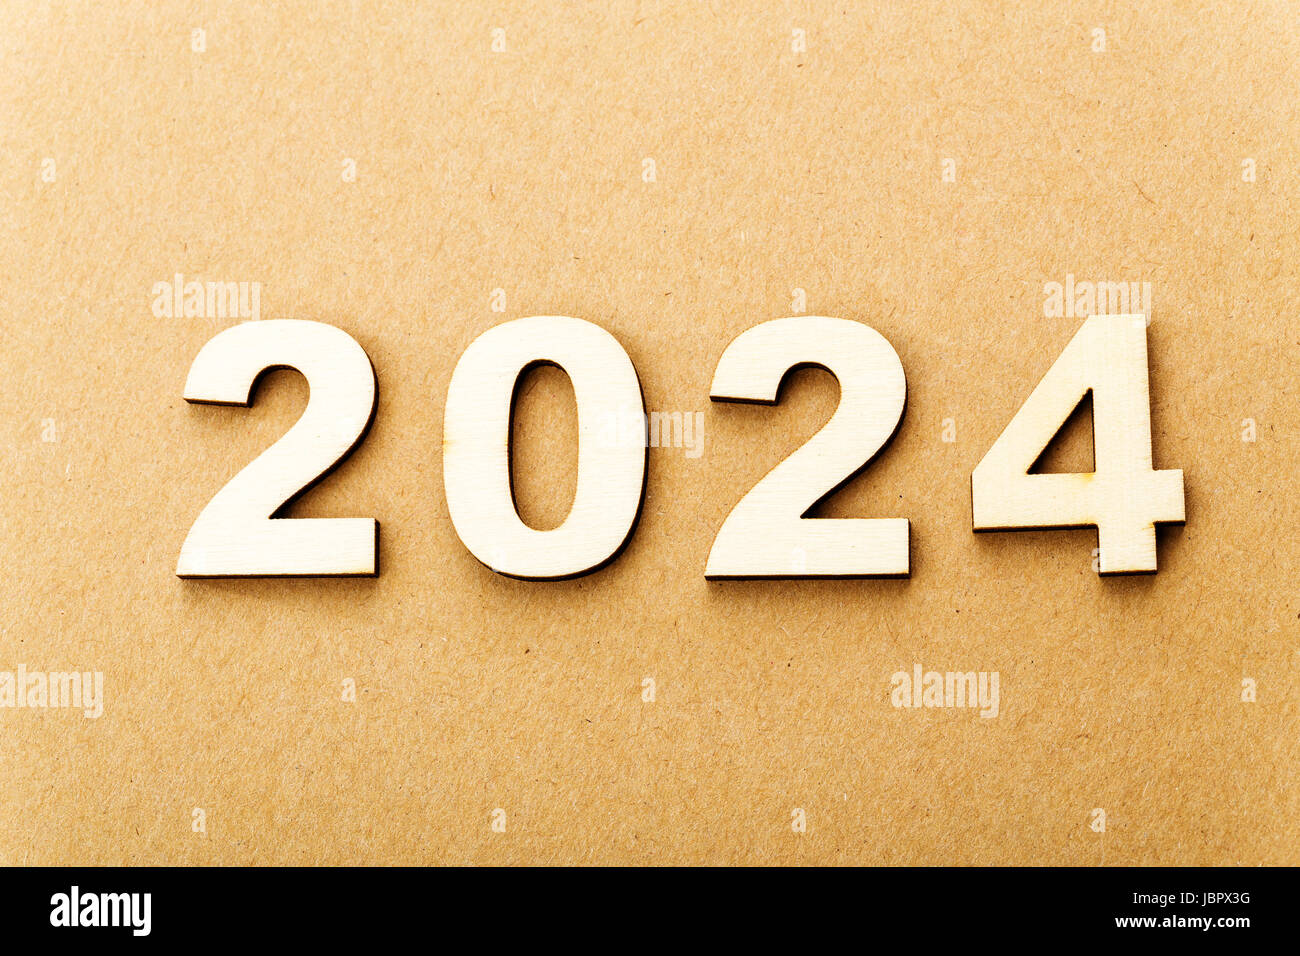 Wooden text for year 2024 Stock Photo: 144947588 - Alamy